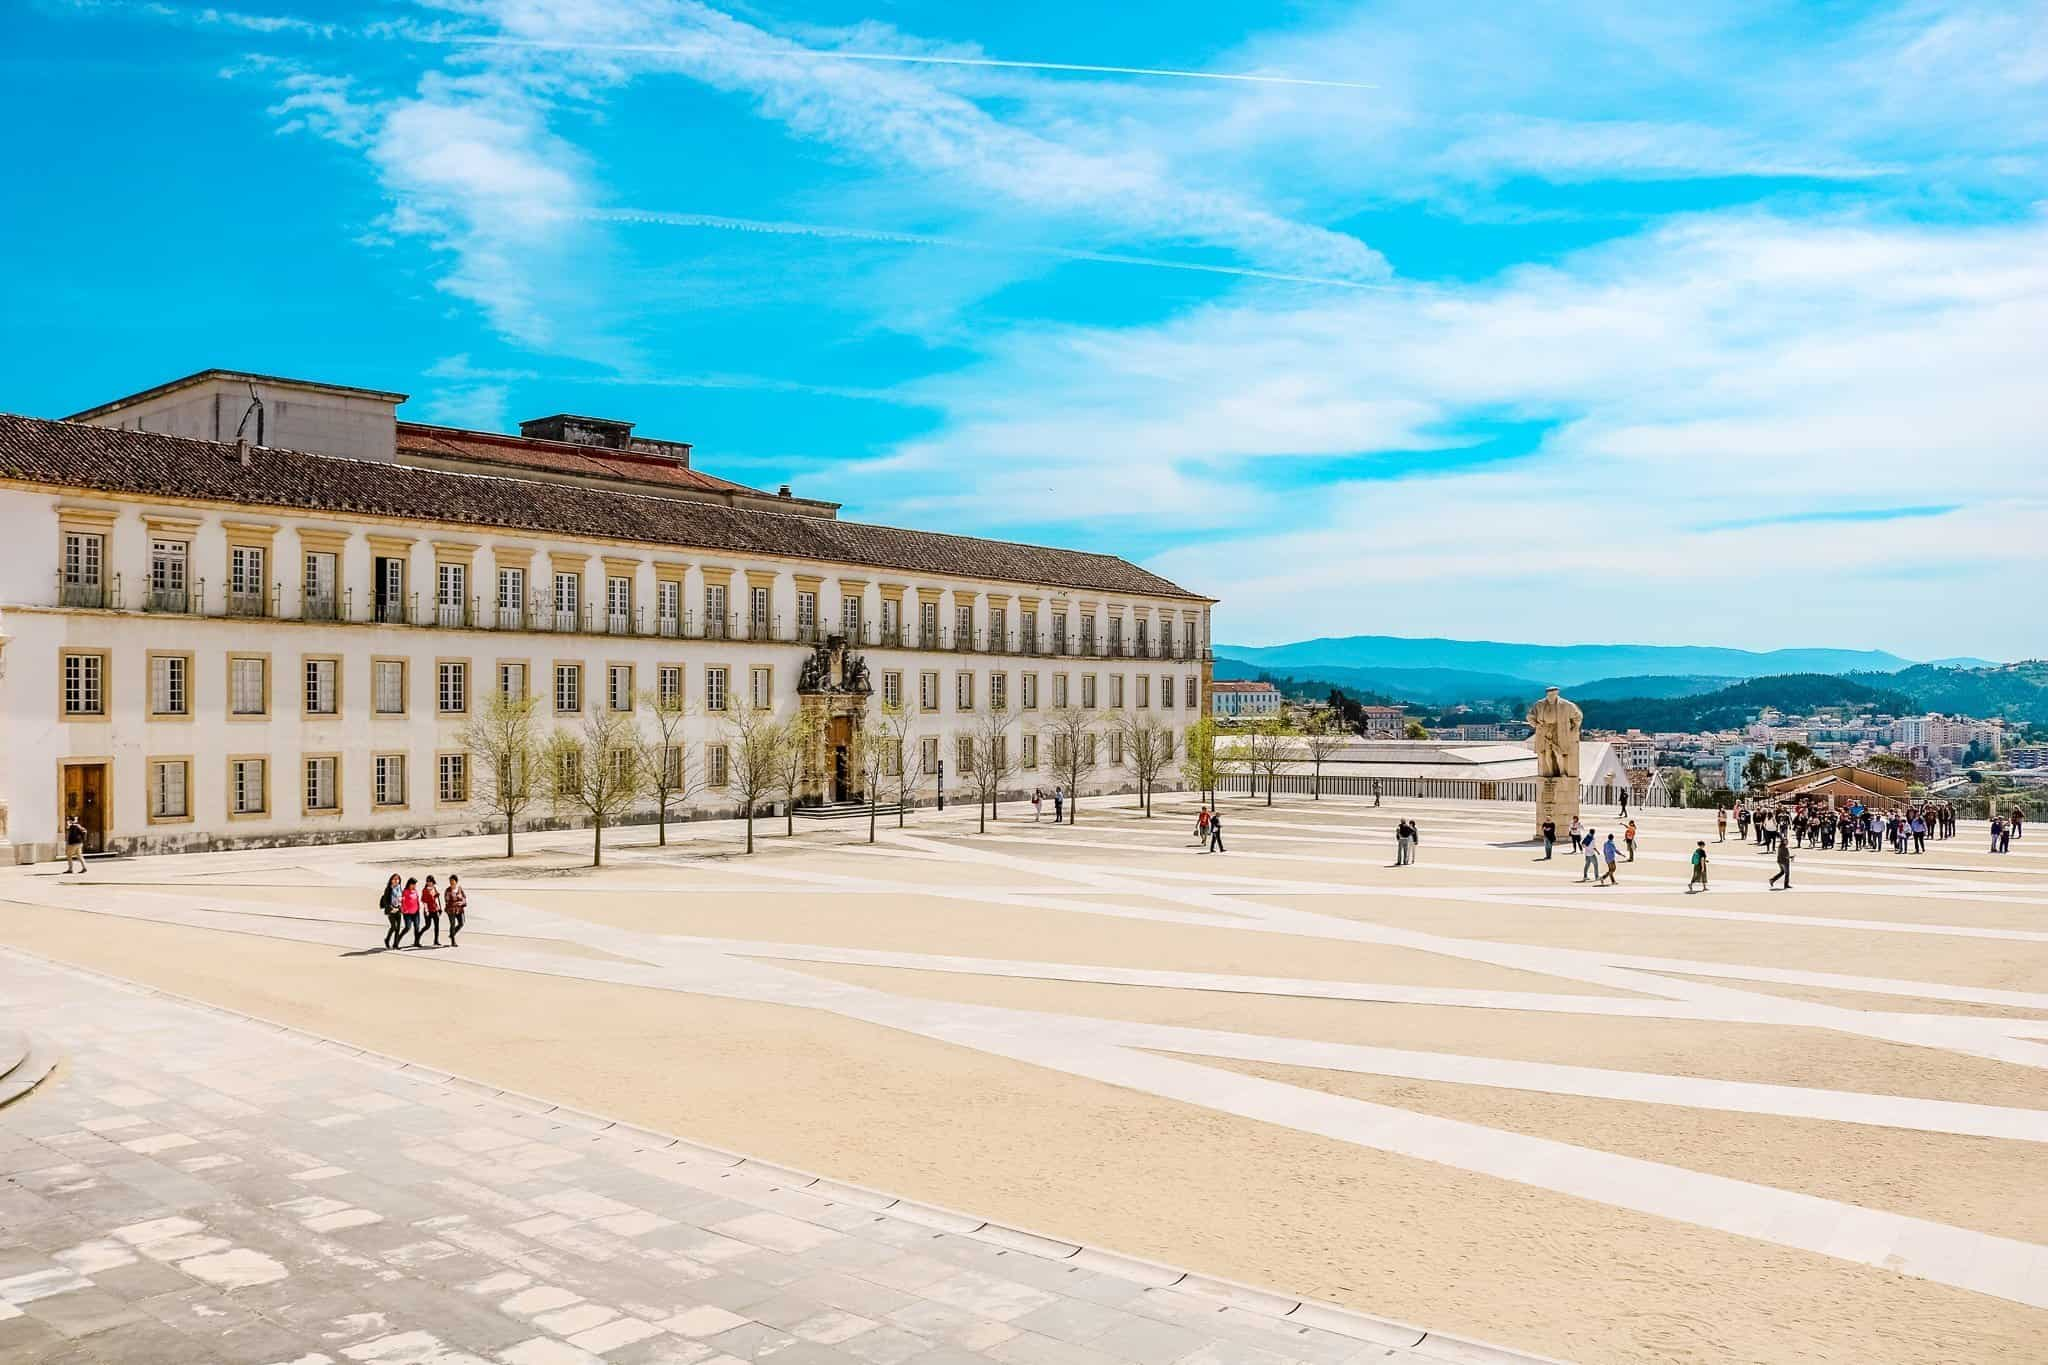 University Square, Paço das Escolas, Coimbra Portugal | The Next Trip